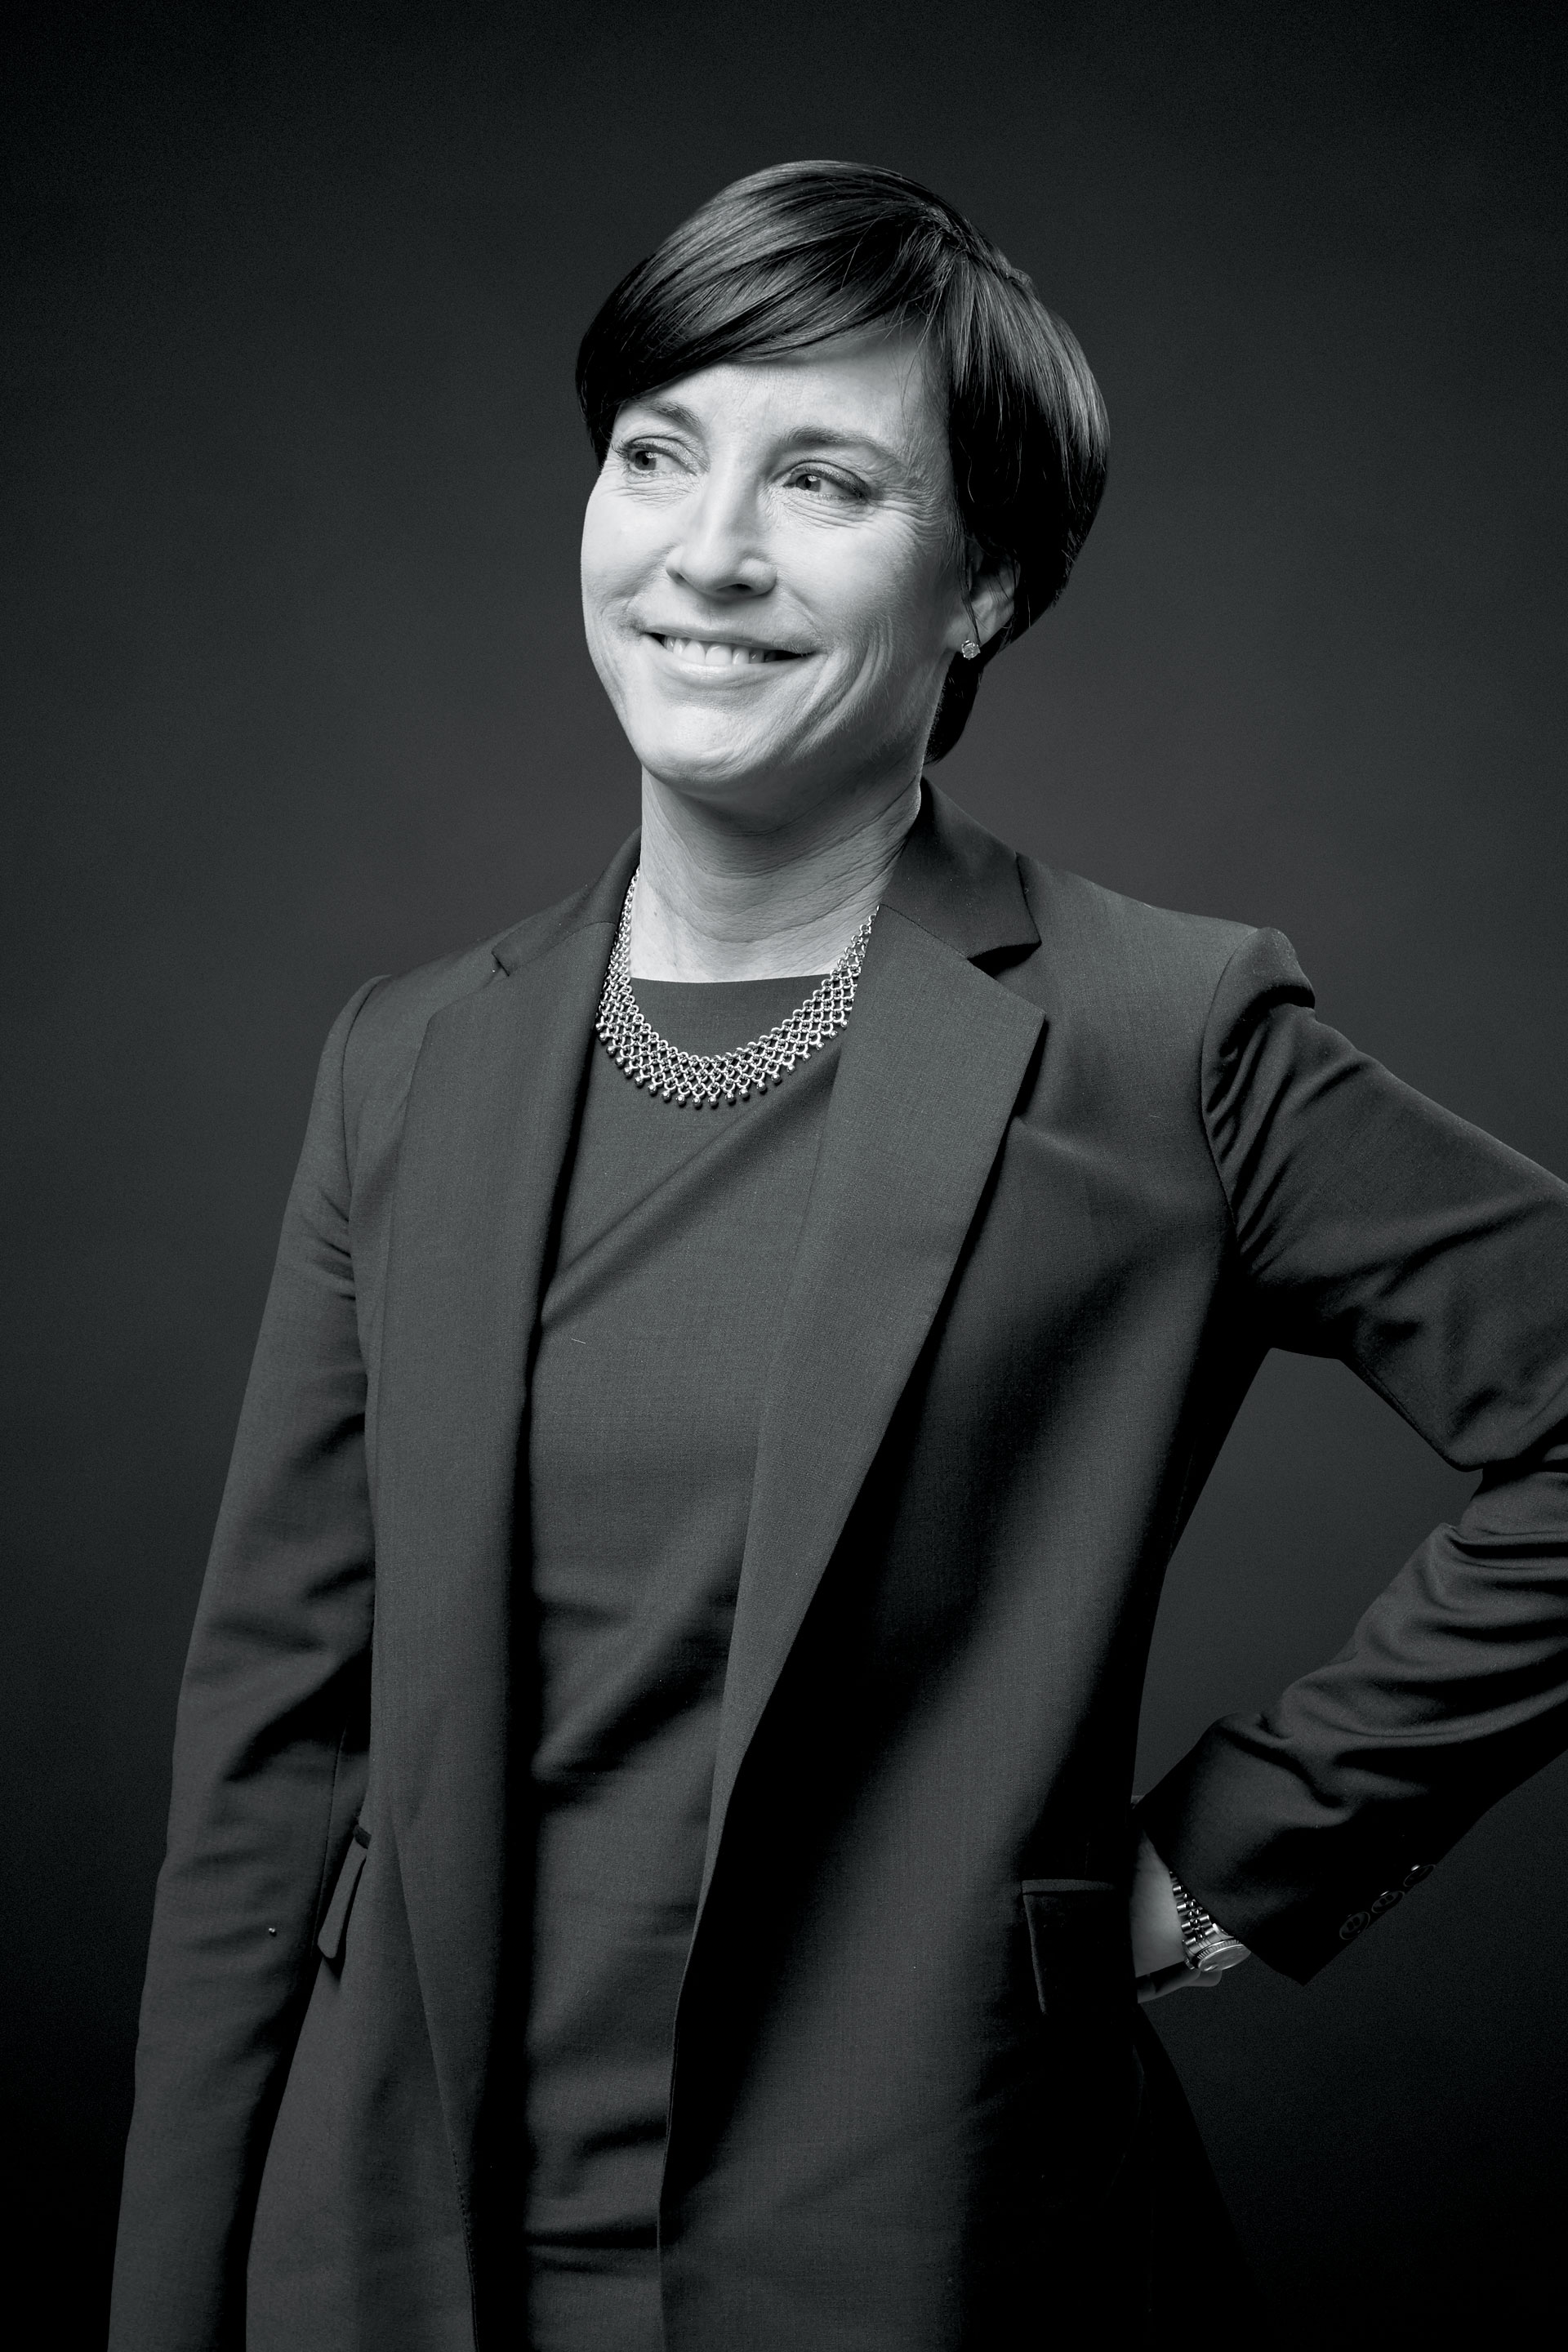 Sarah Ketterer, Chief executive officer and portfolio manager for Causeway Capital